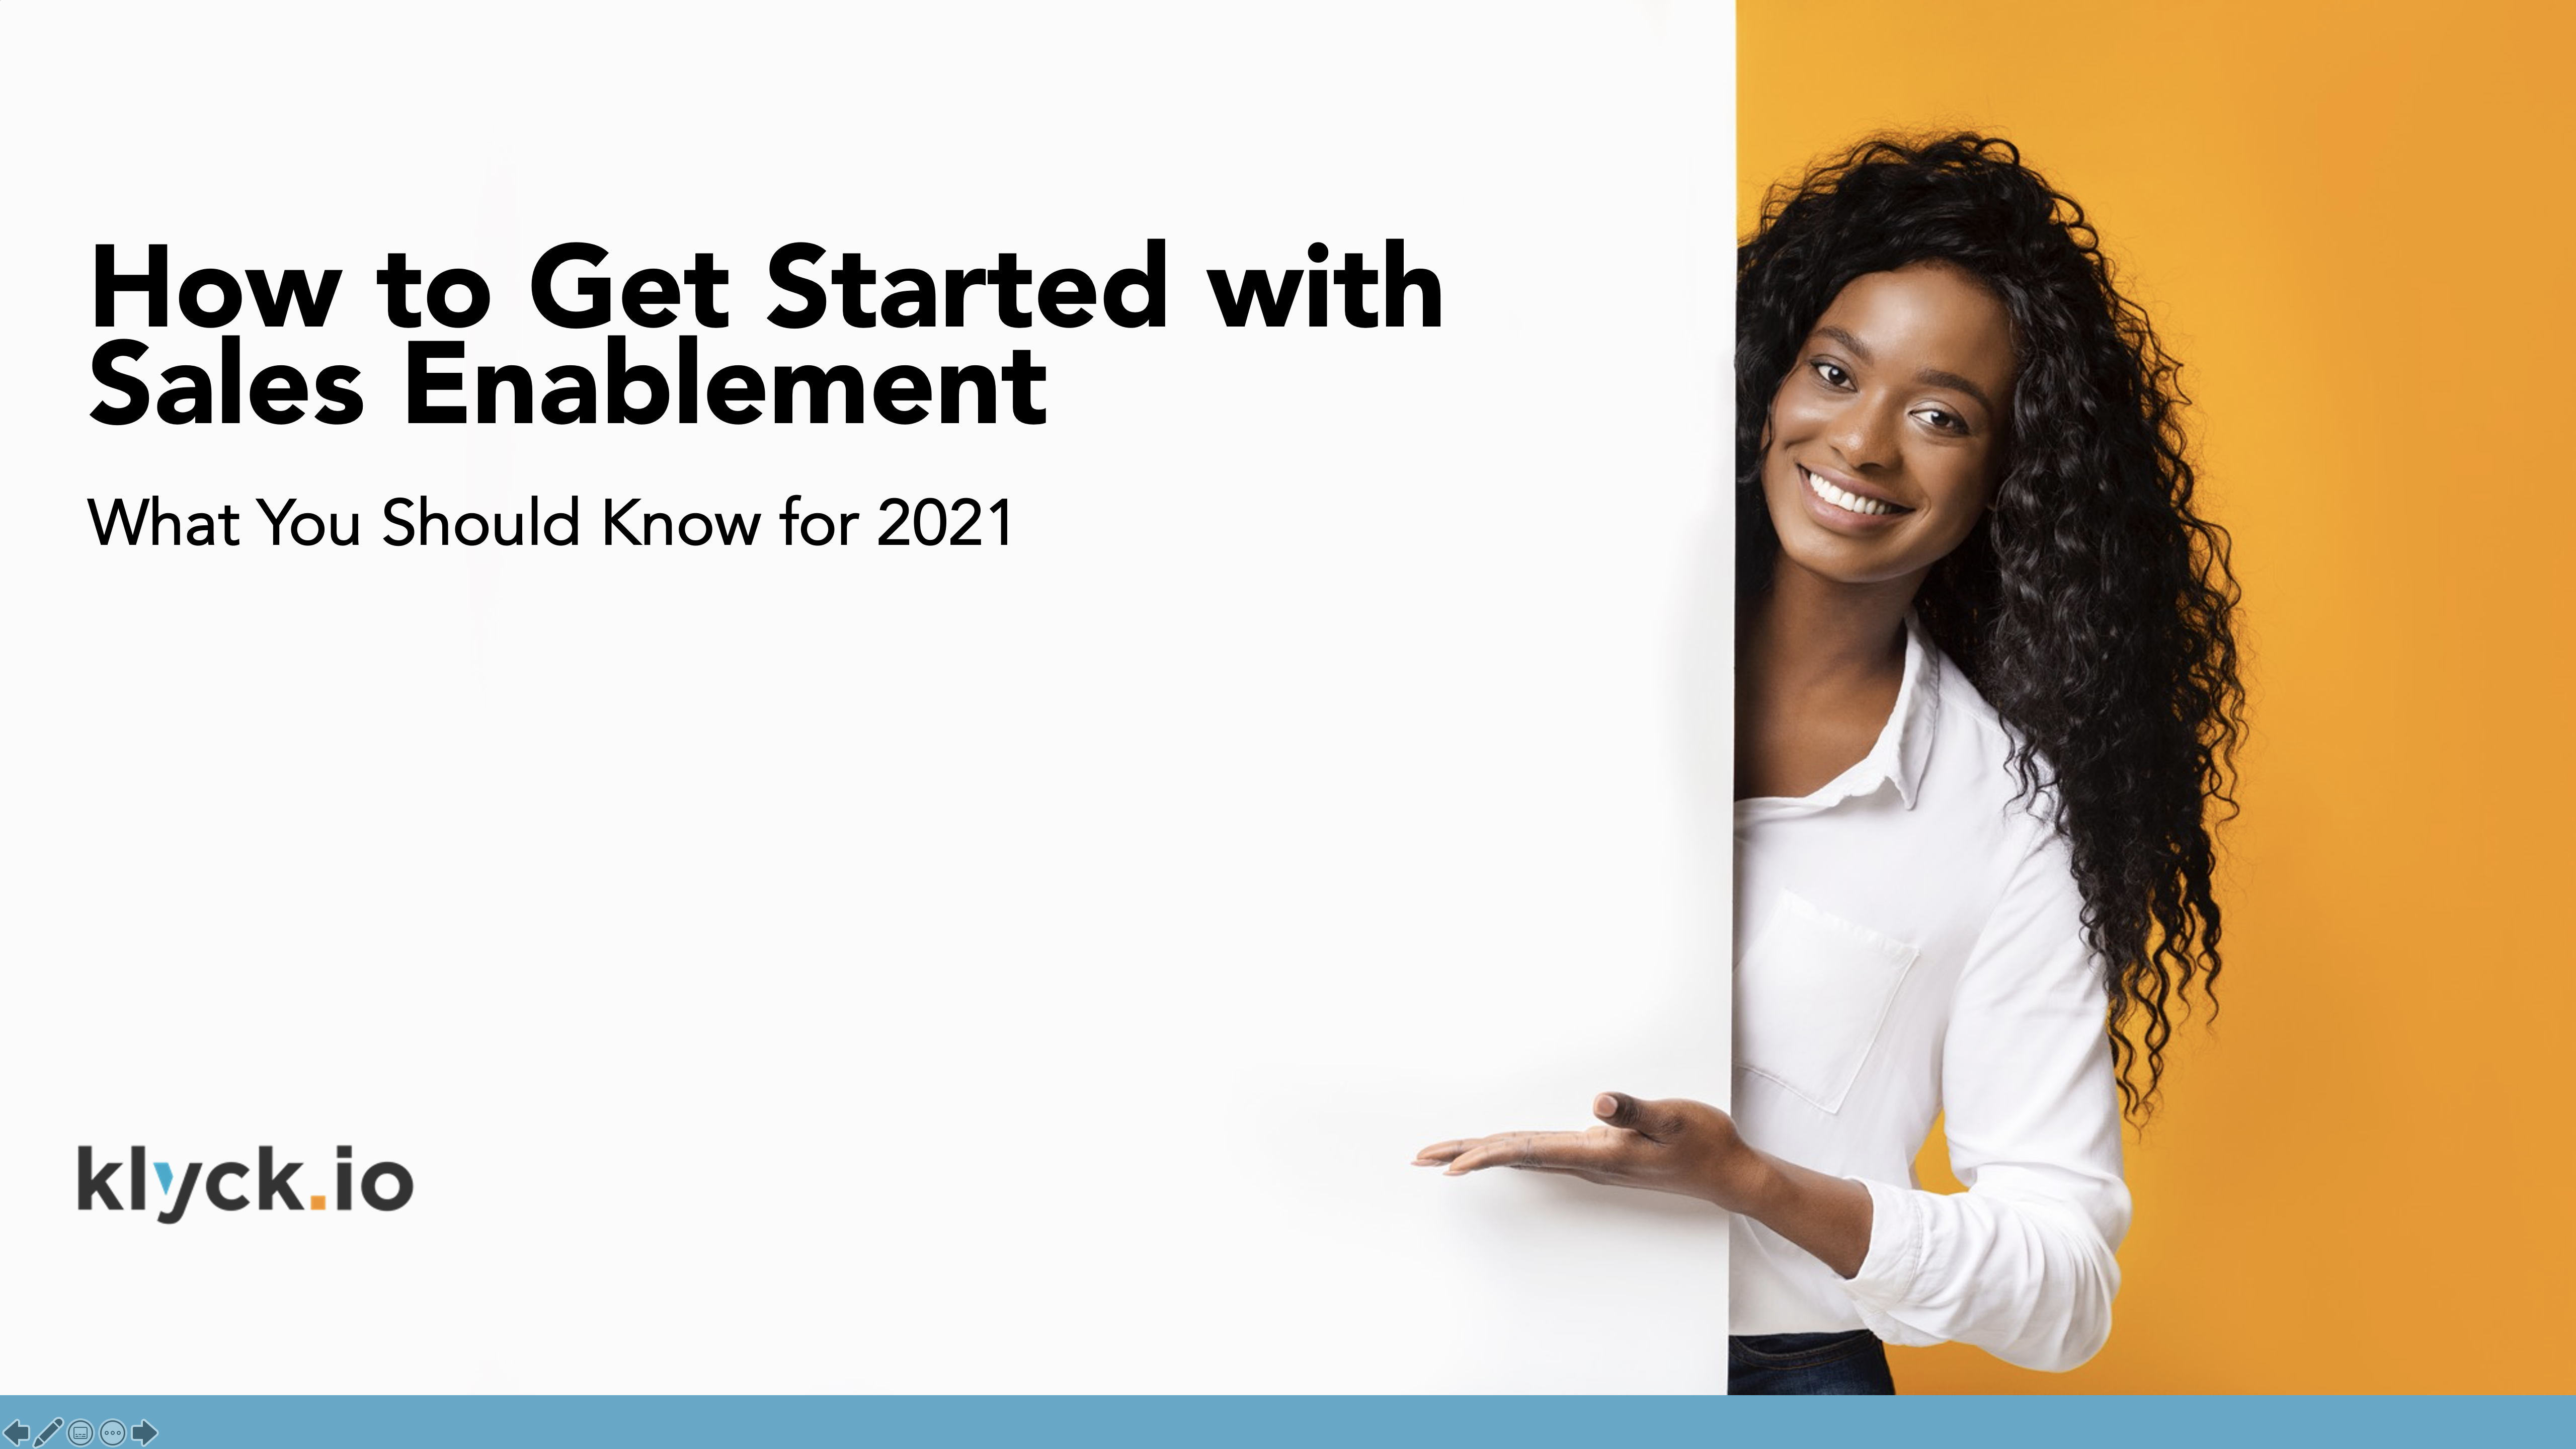 How to Get Started with Sales Enablement